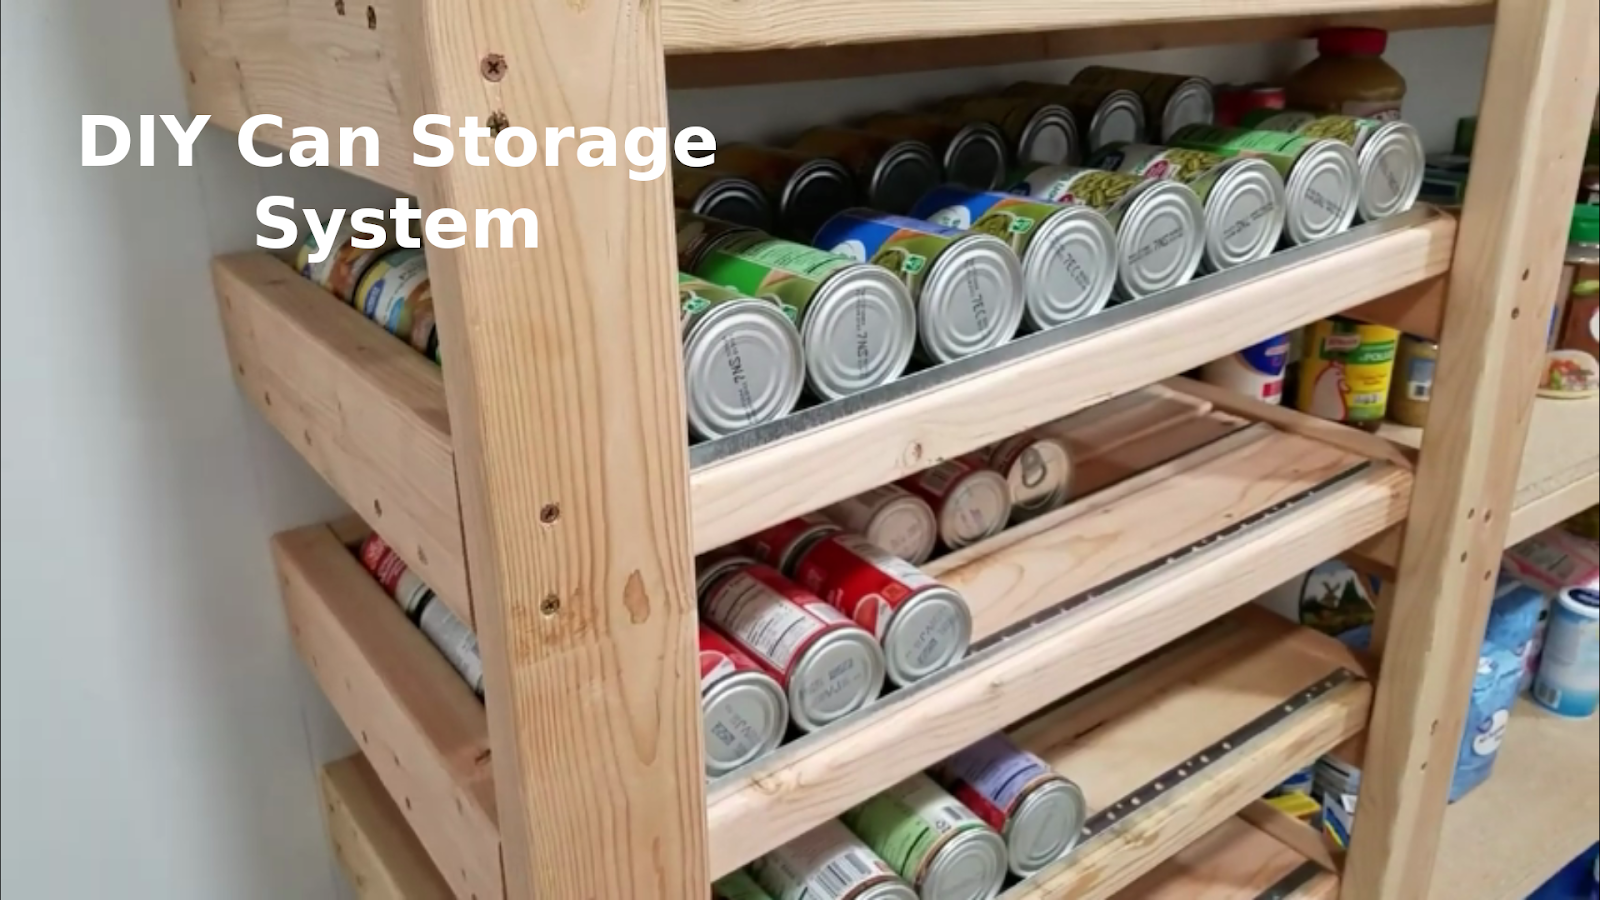 5 DIY Rotating Can Storage System Ideas for Your Kitchen Pantry